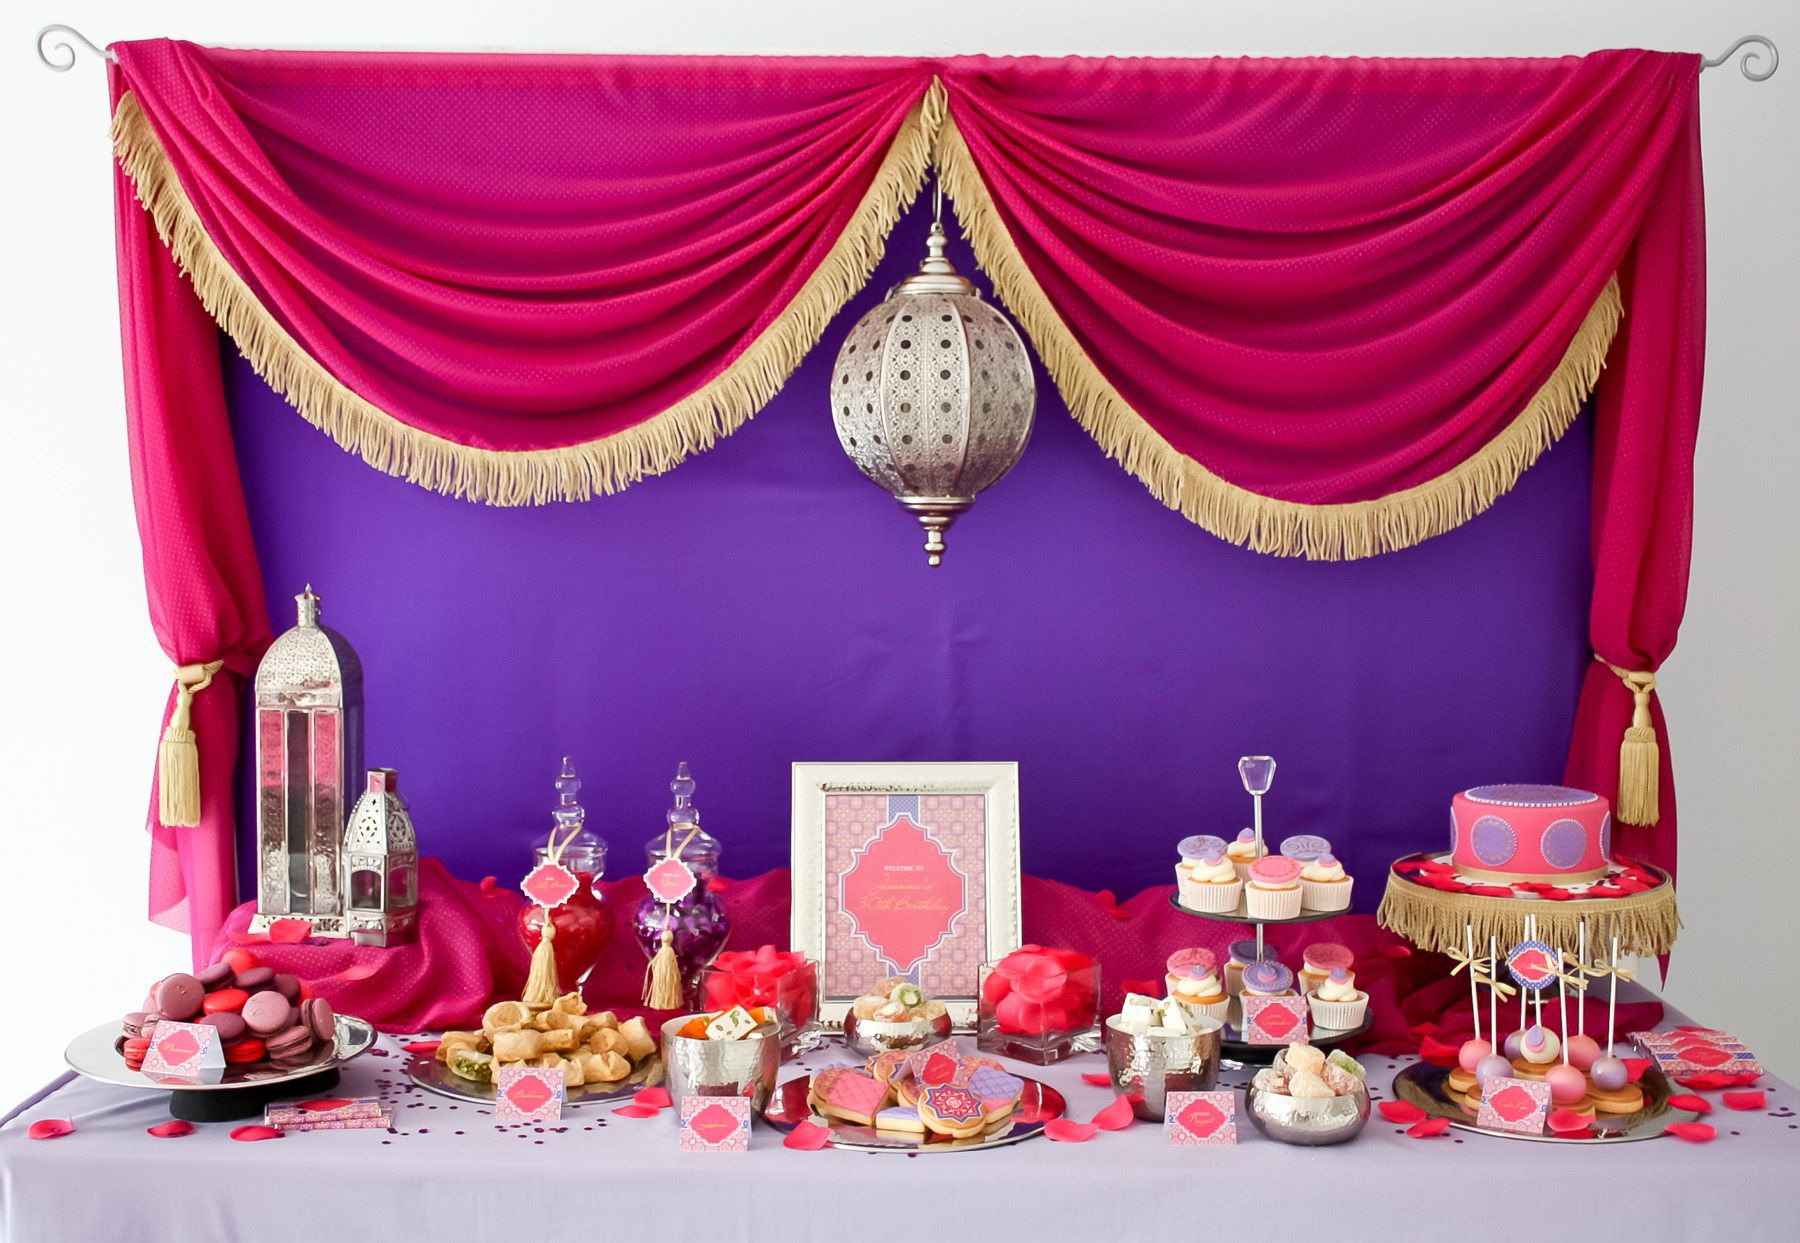 Stunning Moroccan birthday party dessert table | Best of: Kids ...